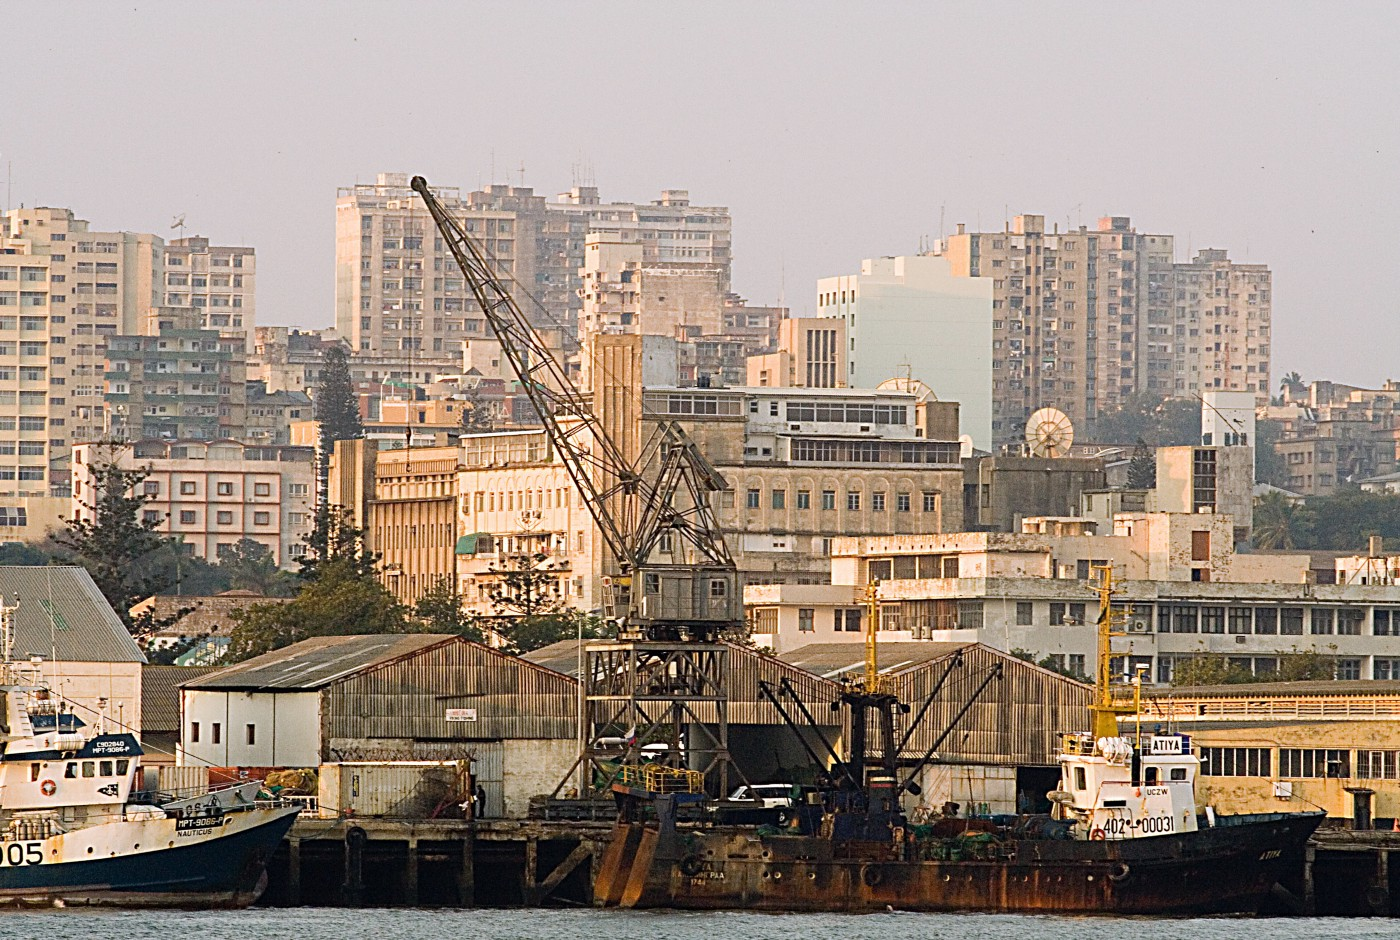 A crowded city skyline with an industrial port in the foreground.